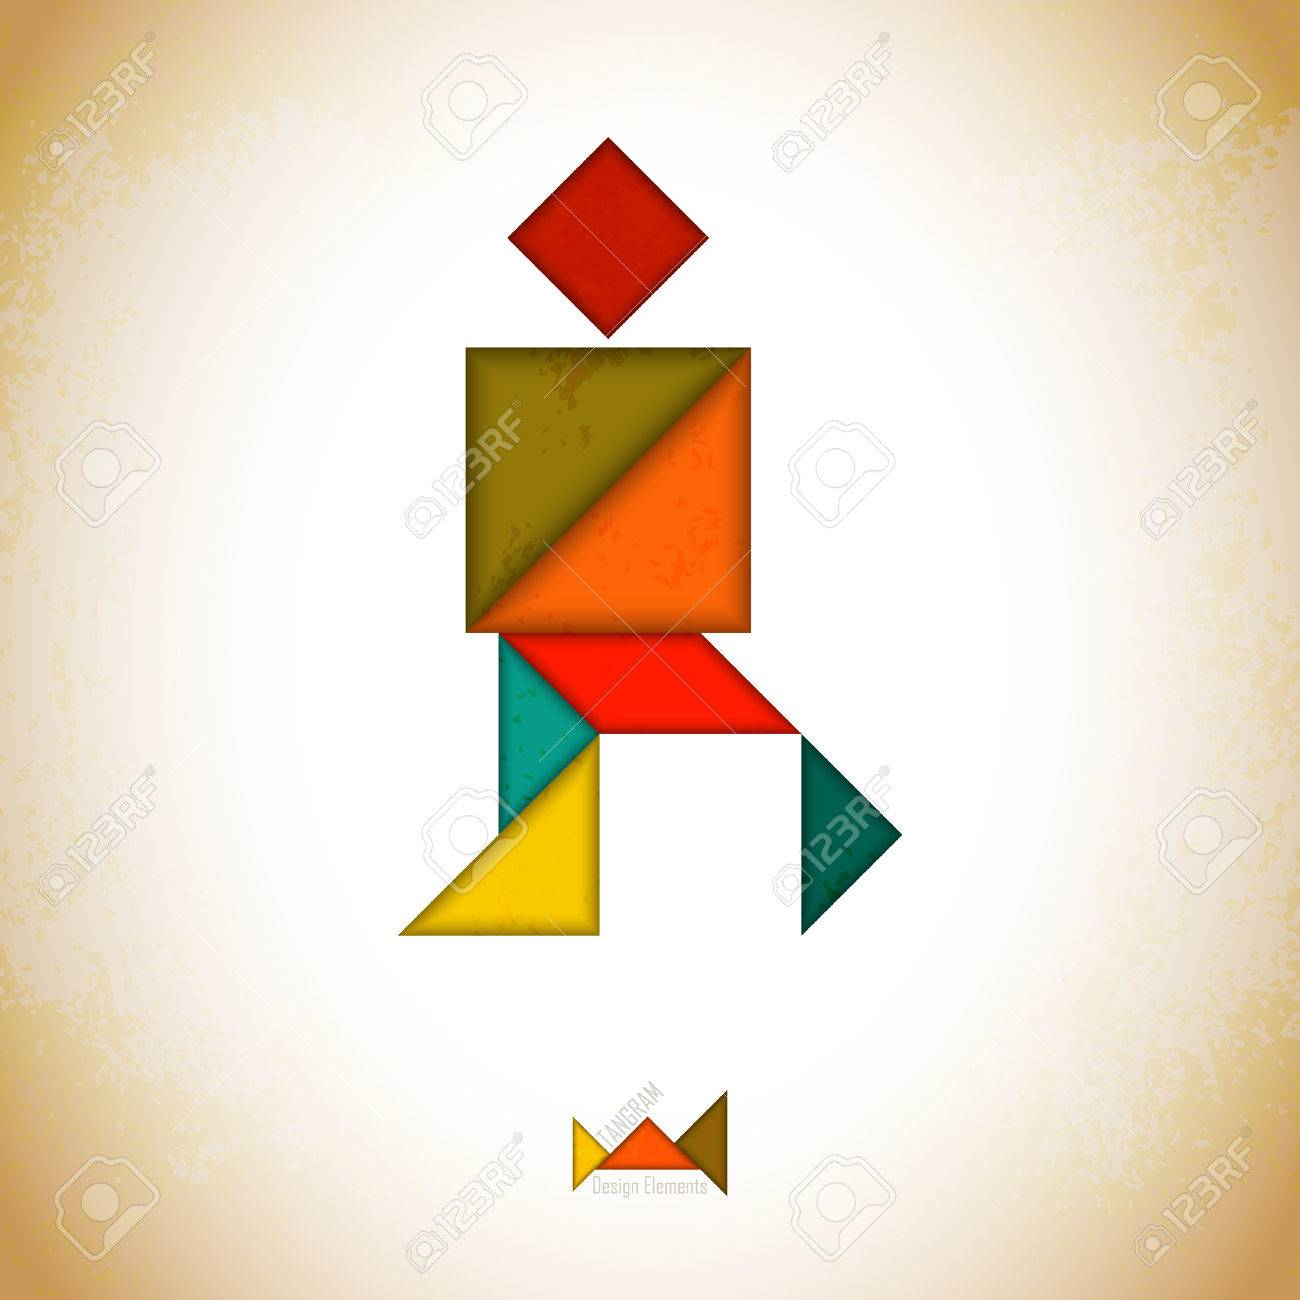 Tangram People, L Made Of Tangram Pieces, Geometric Shapes. Traditional  Chinese Puzzle Tangram Solution Card, Learning Game For Kids, Children. destiné Pièces Tangram